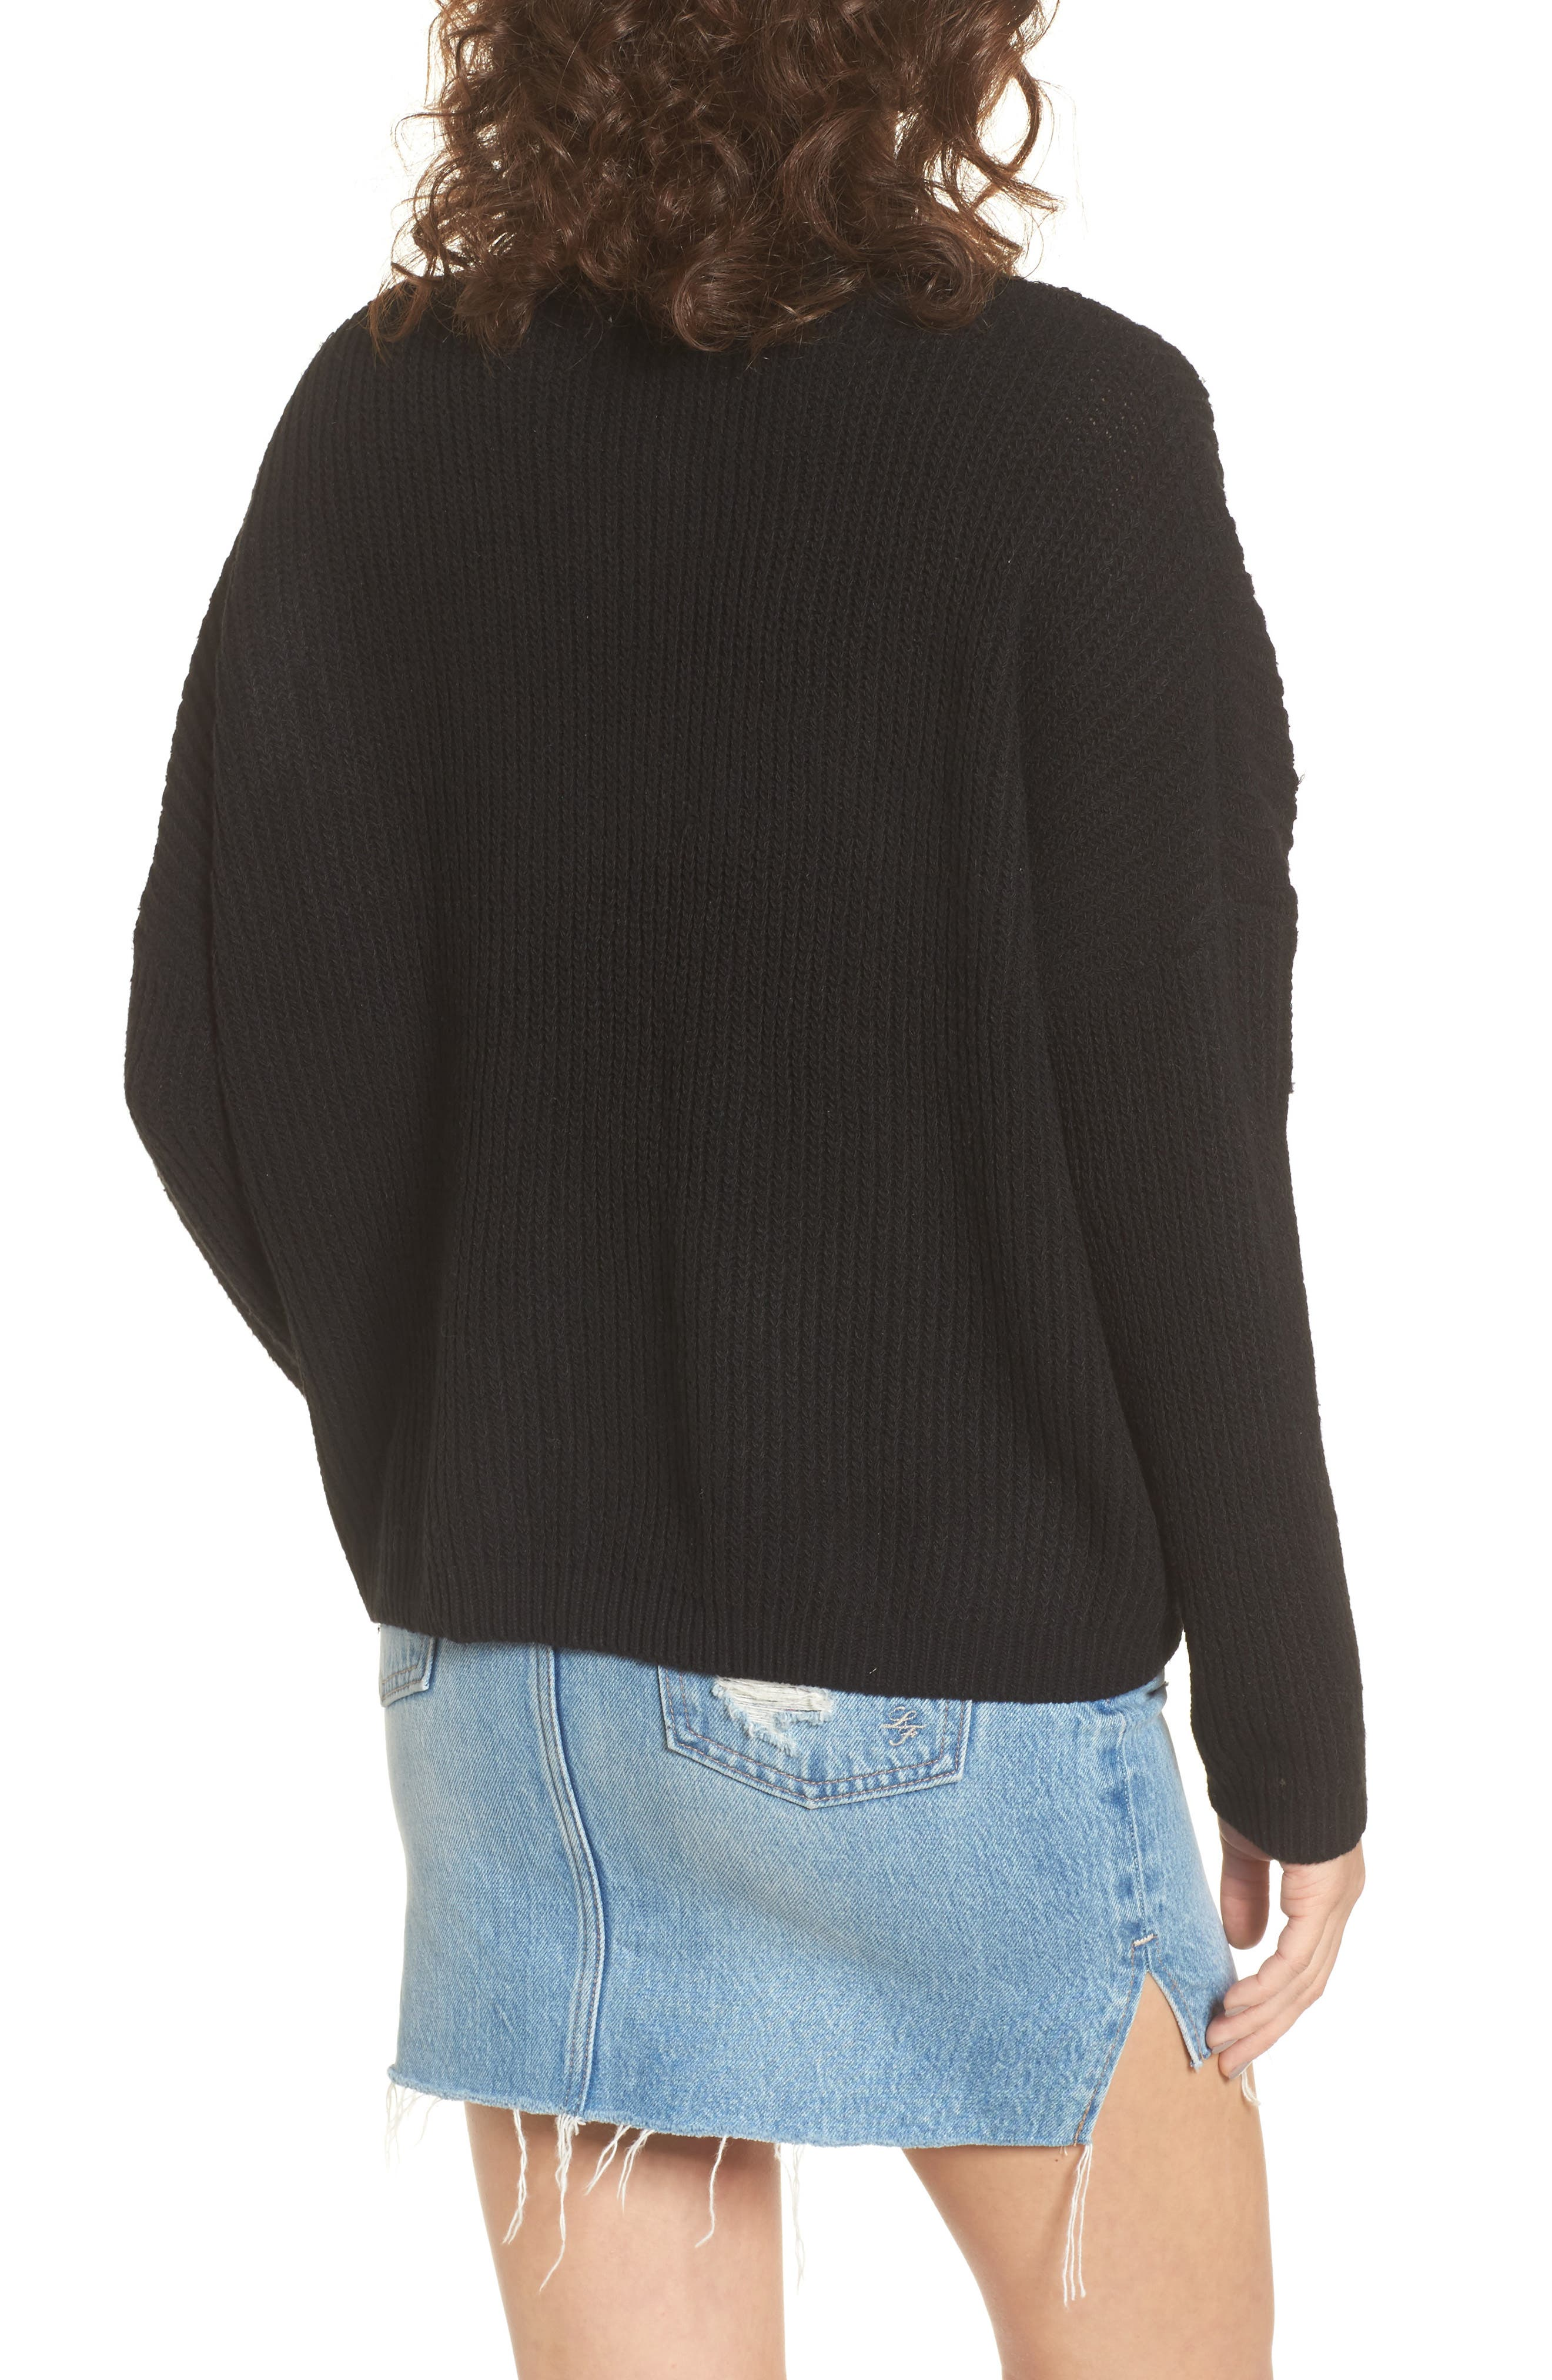 Embroidered Floral Sweater,                             Alternate thumbnail 2, color,                             001